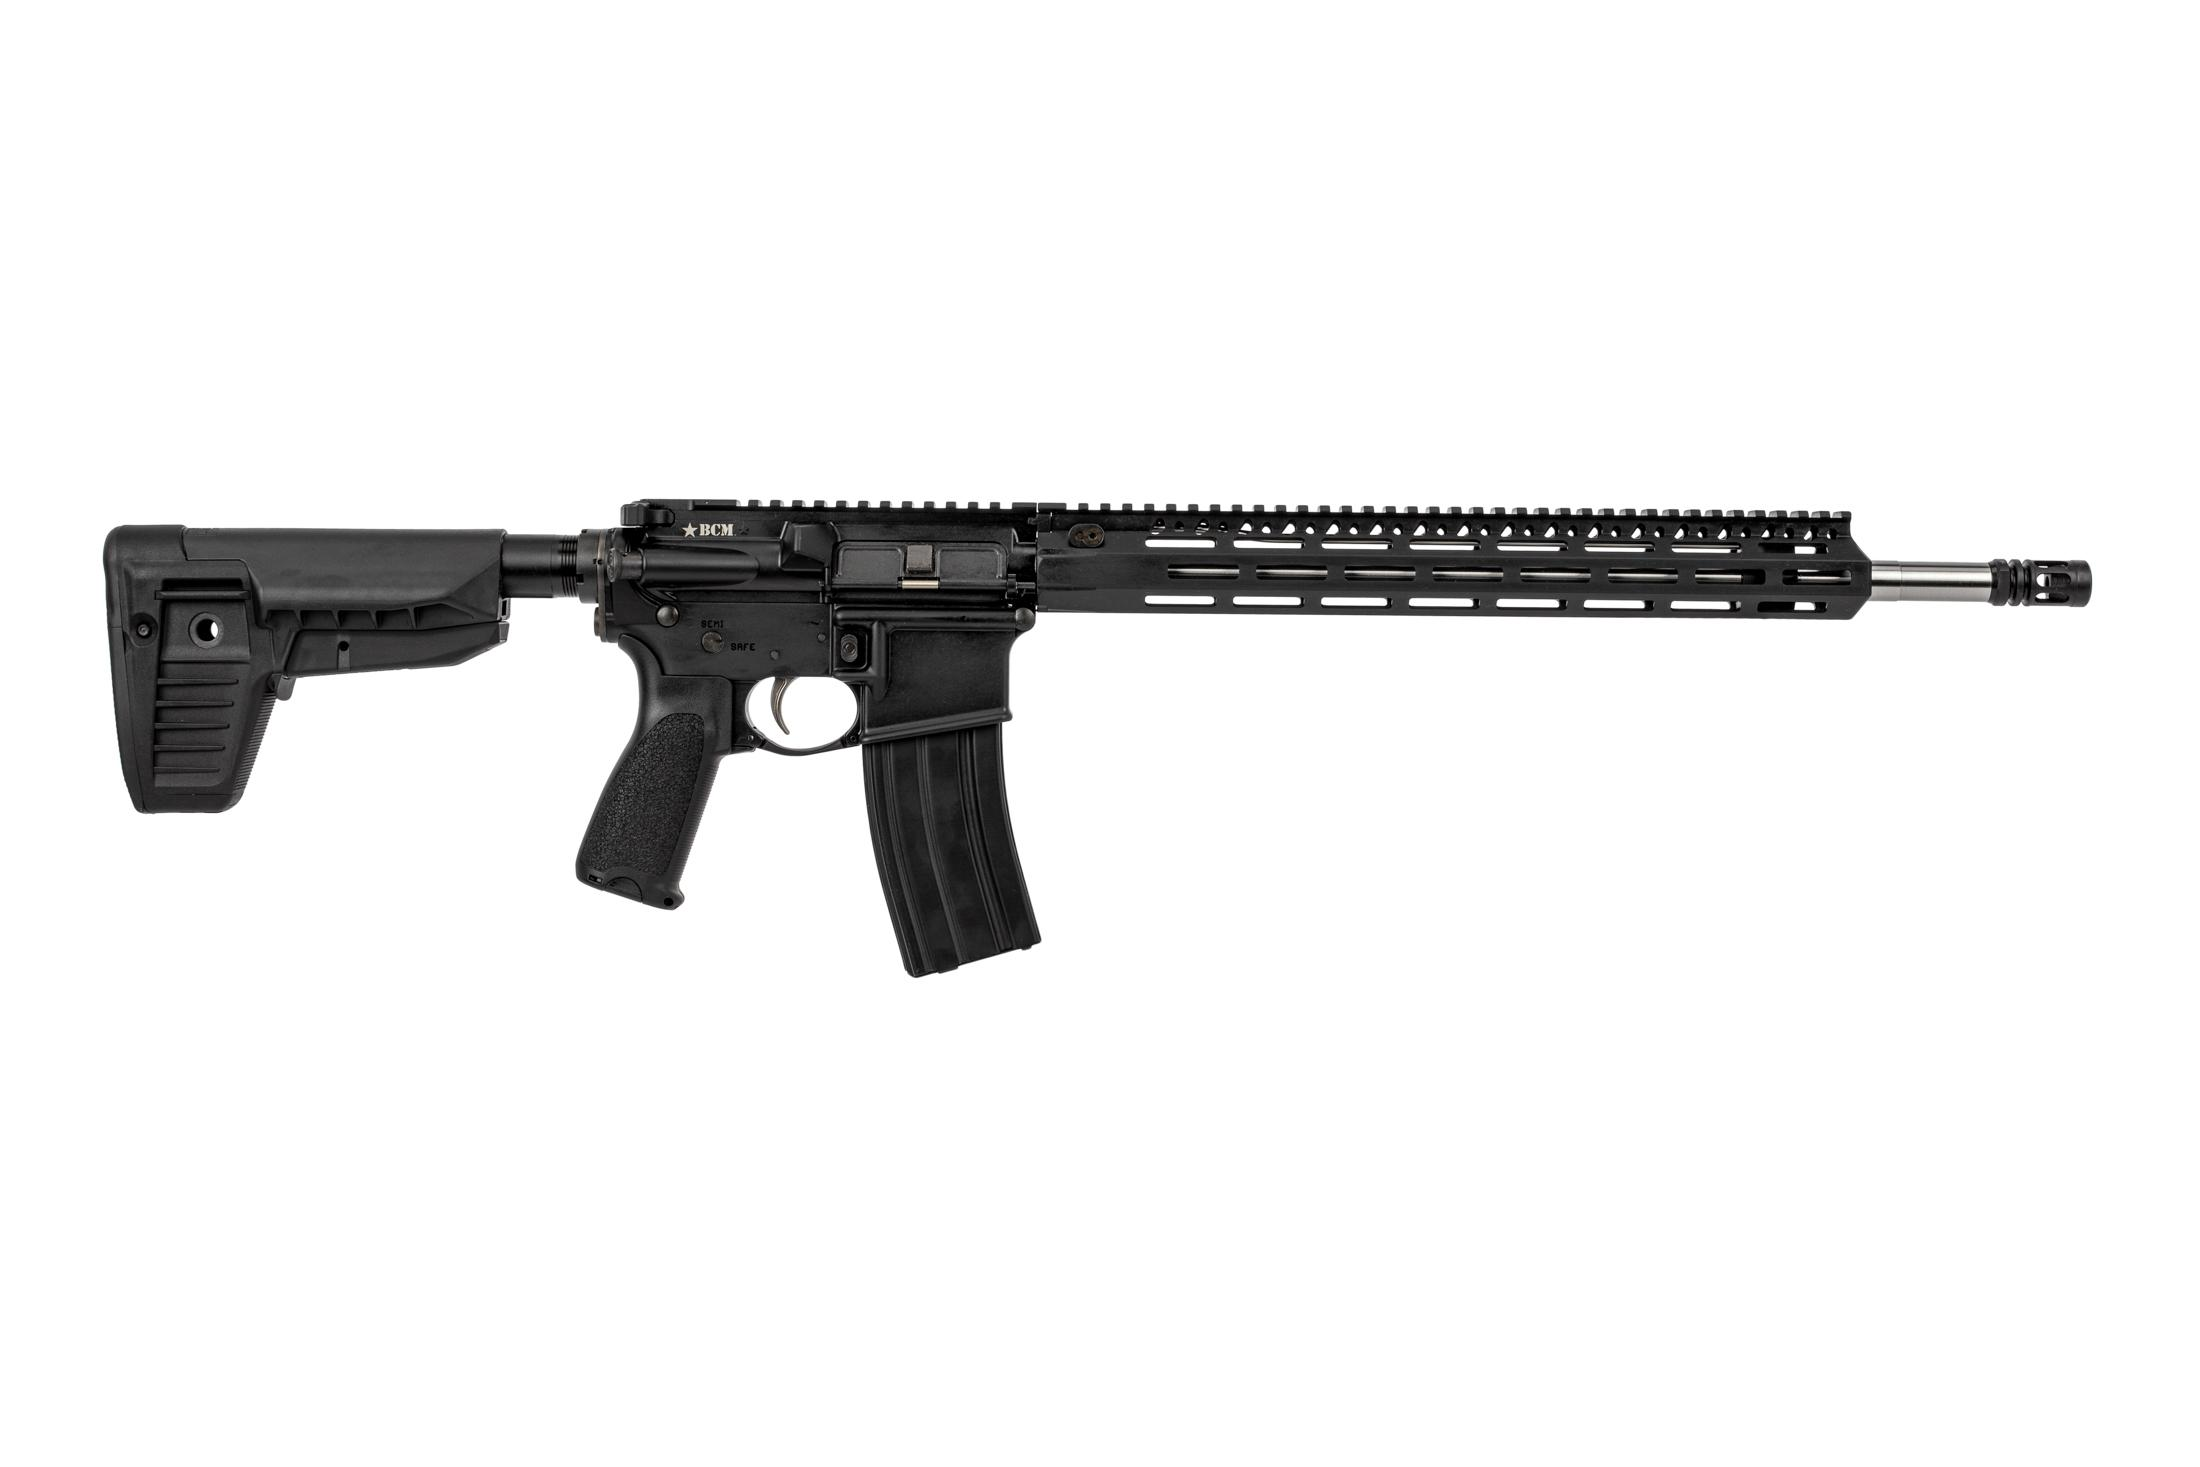 Bravo Company Manufacturing RECCE-14 MCMR Lightweight 5.56 Rifle